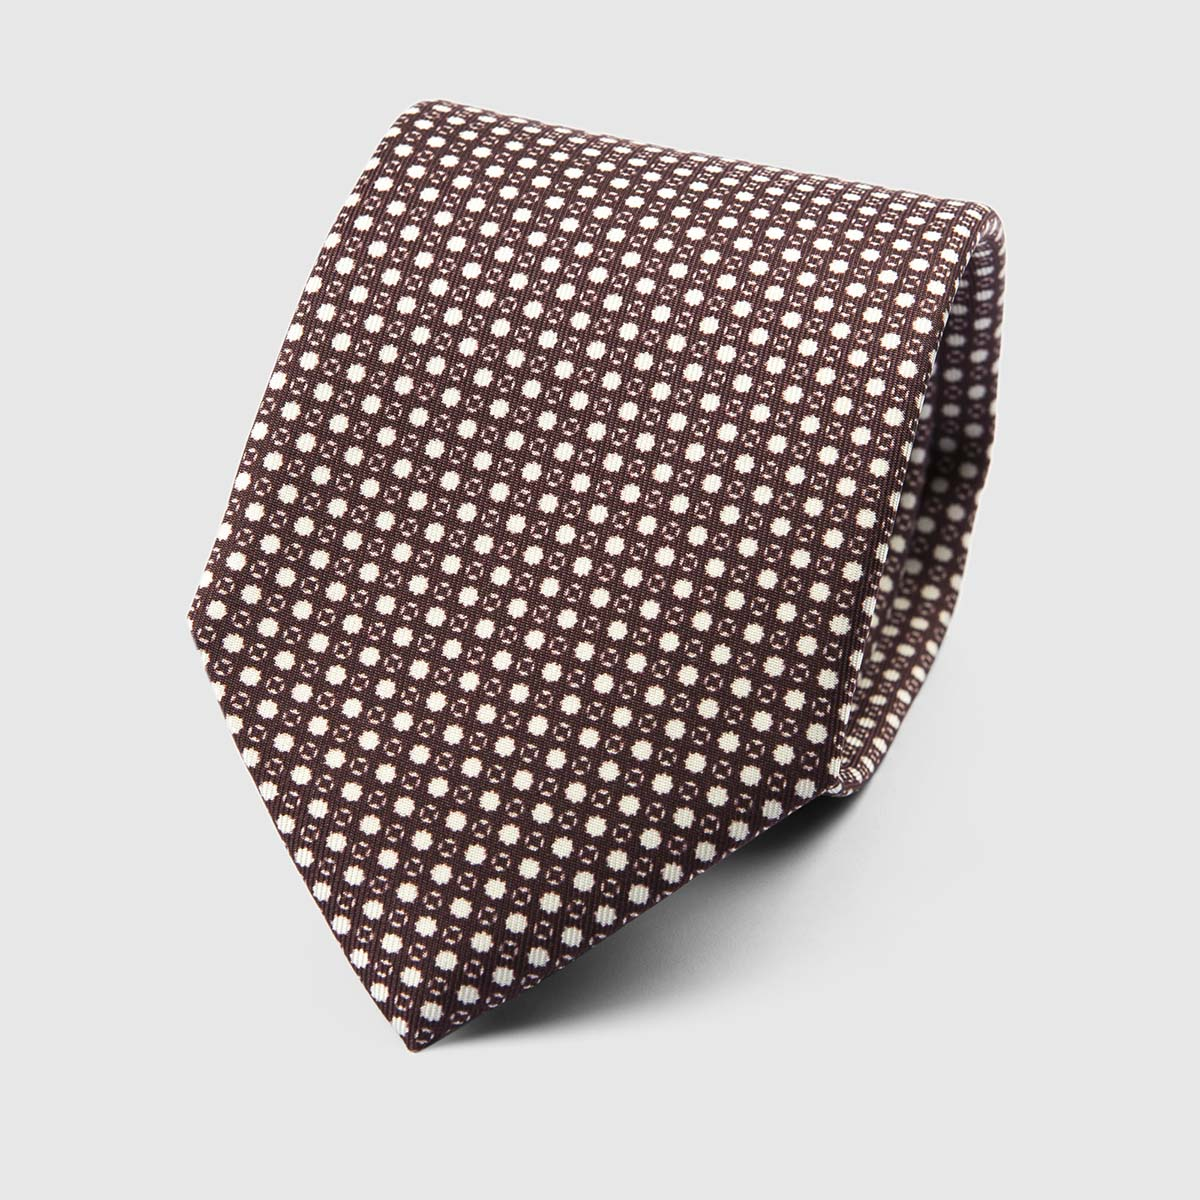 Particle Three Fold Necktie in Bordeaux & White